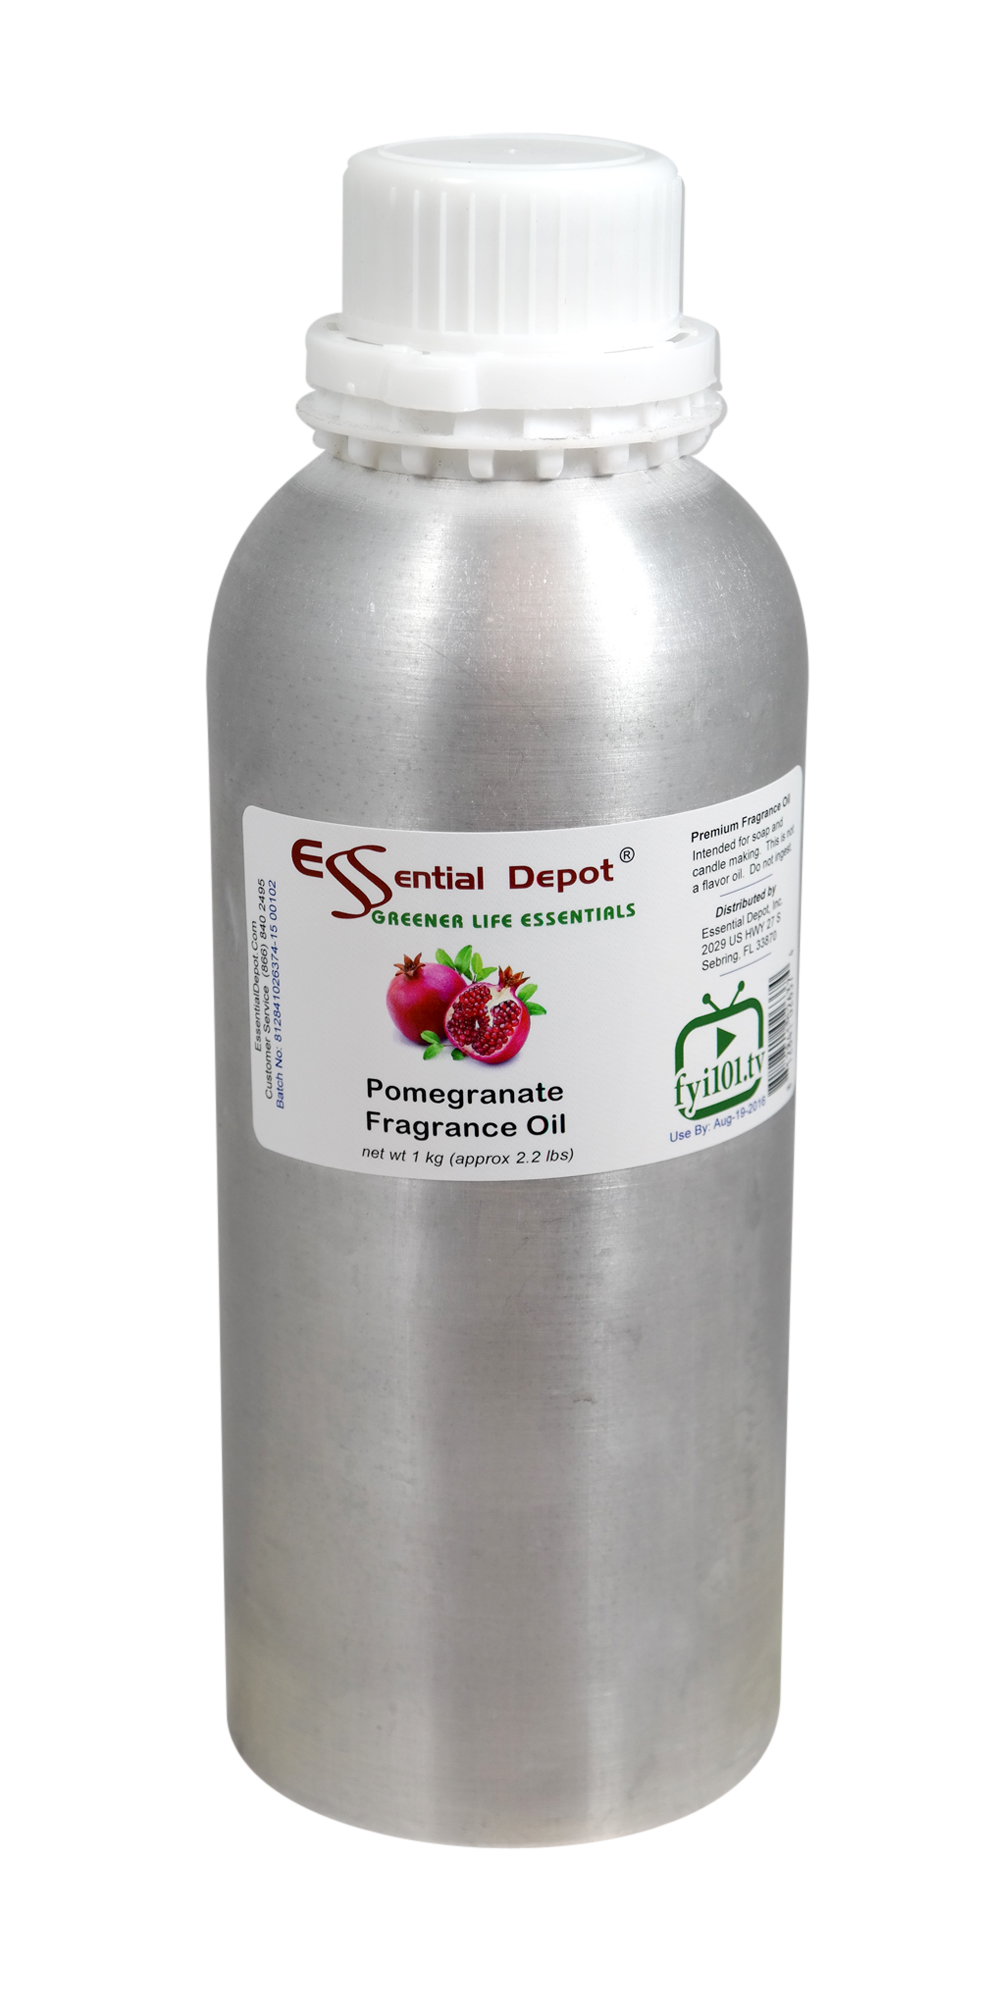 Pomegranate Fragrance Oil - 1 kg. - Approx 2.2 lbs. - FREE US SHIPPING